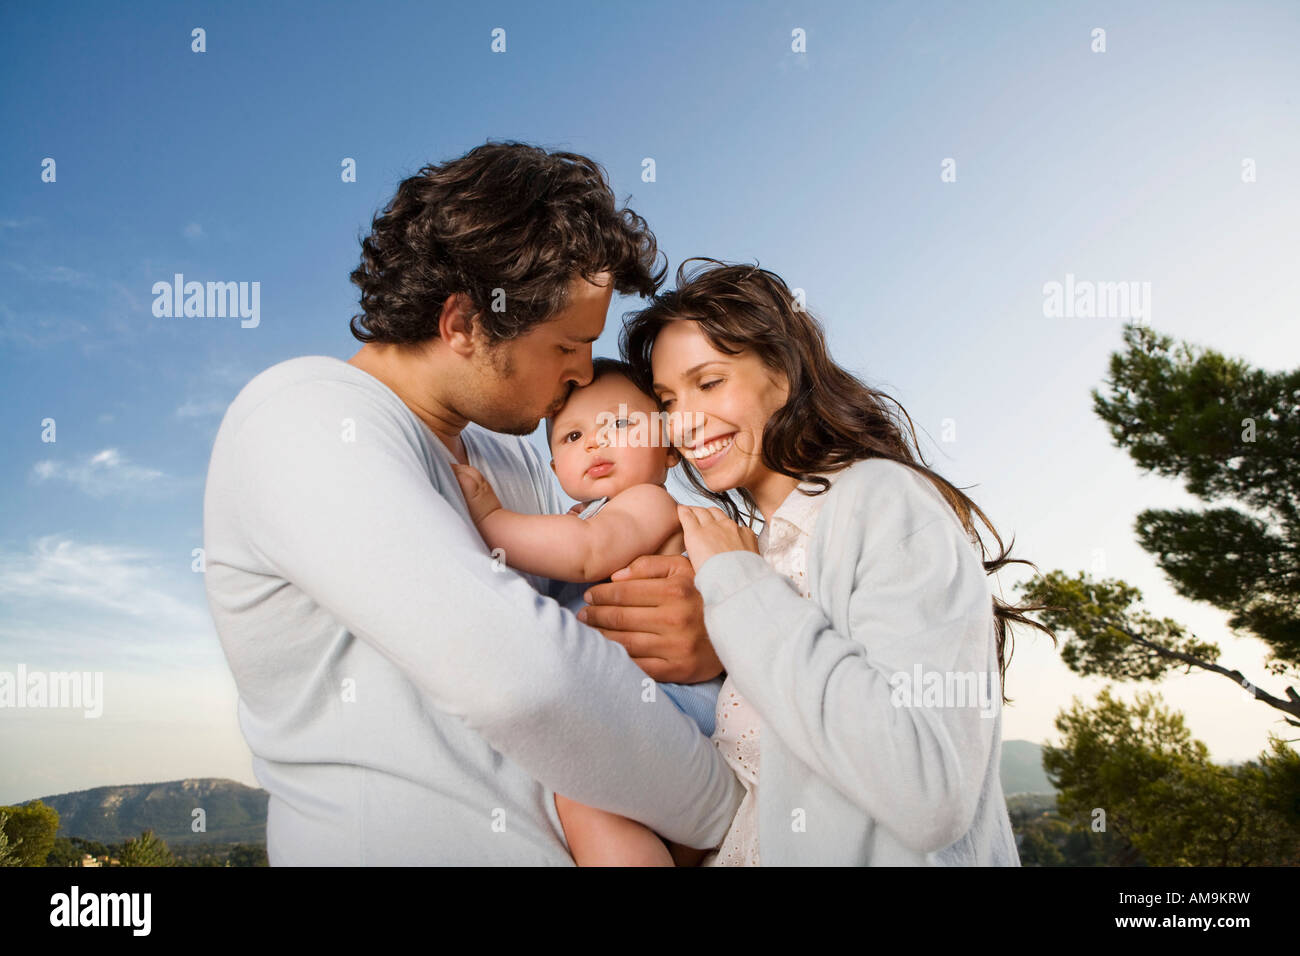 Couple holding a baby outdoors with the man kissing him. - Stock Image